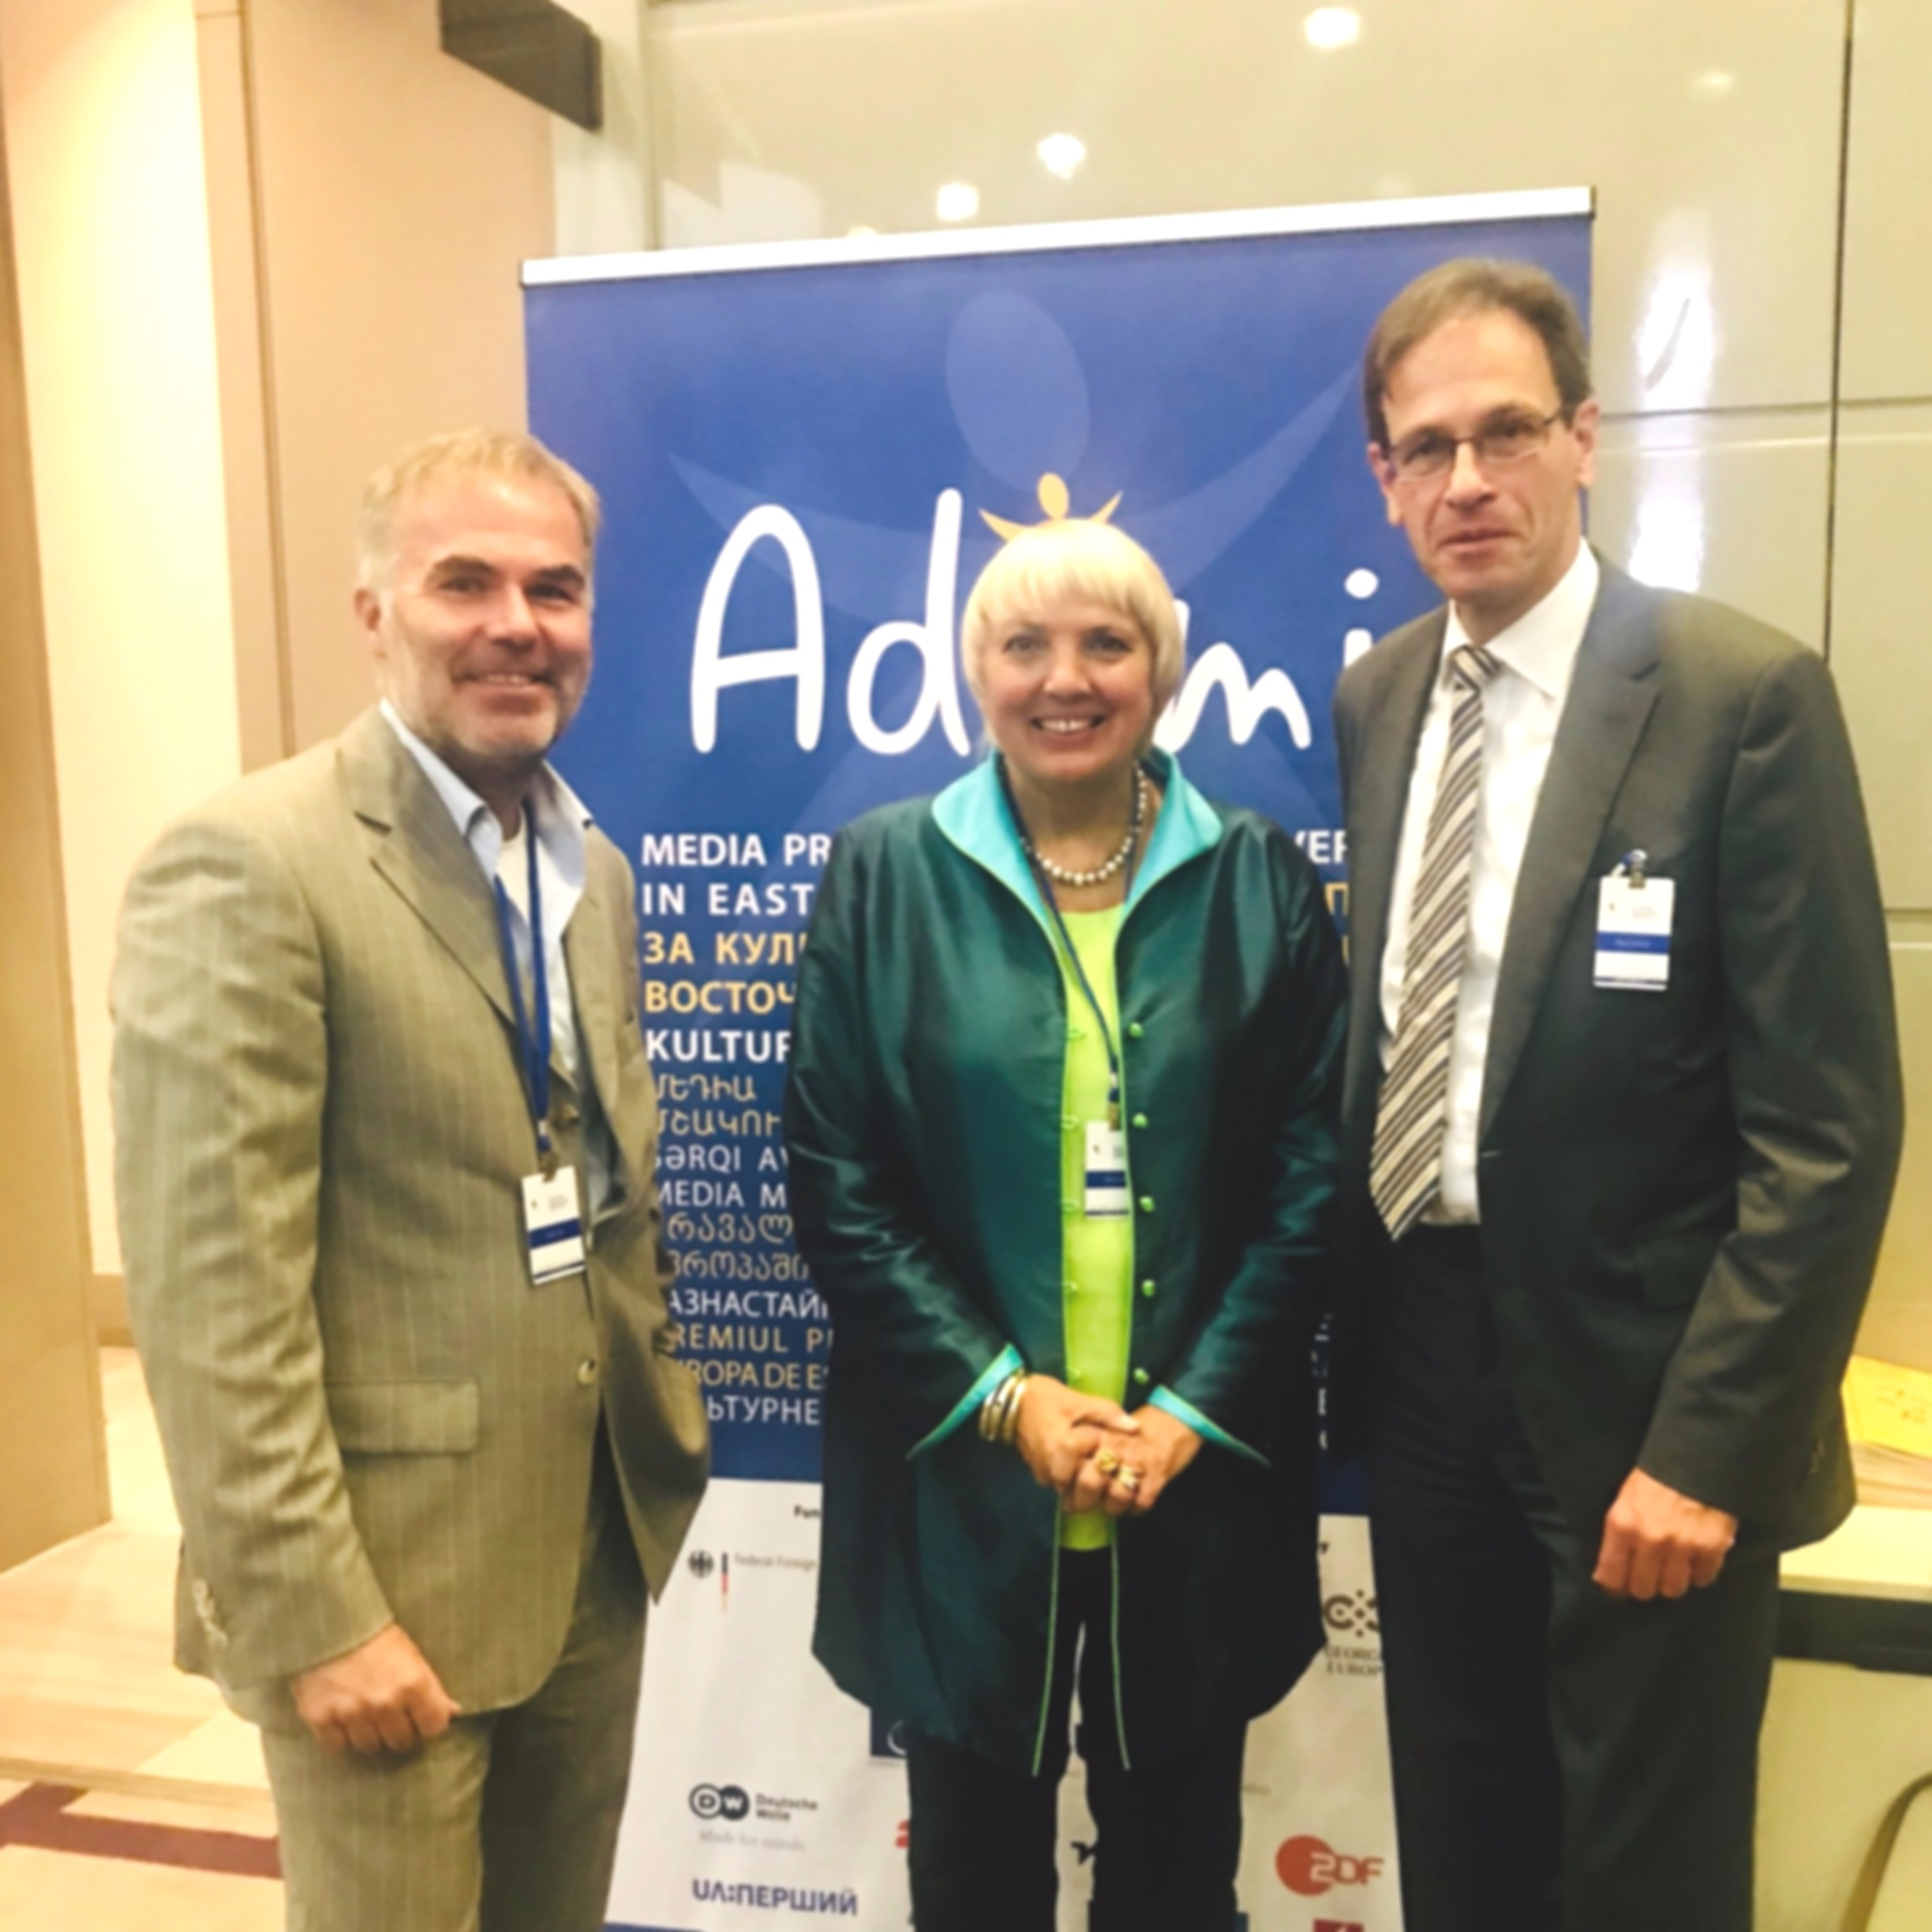 from the right: Mr. Hubert Knirsch, Ambassador of the Federal Republic of Germany to Georgia, Mrs. Claudia Roth, Vice President of the German Bundestag and Mr.Stefan Tolz, ADAMI Programme Director at the 16th Batumi International Conference